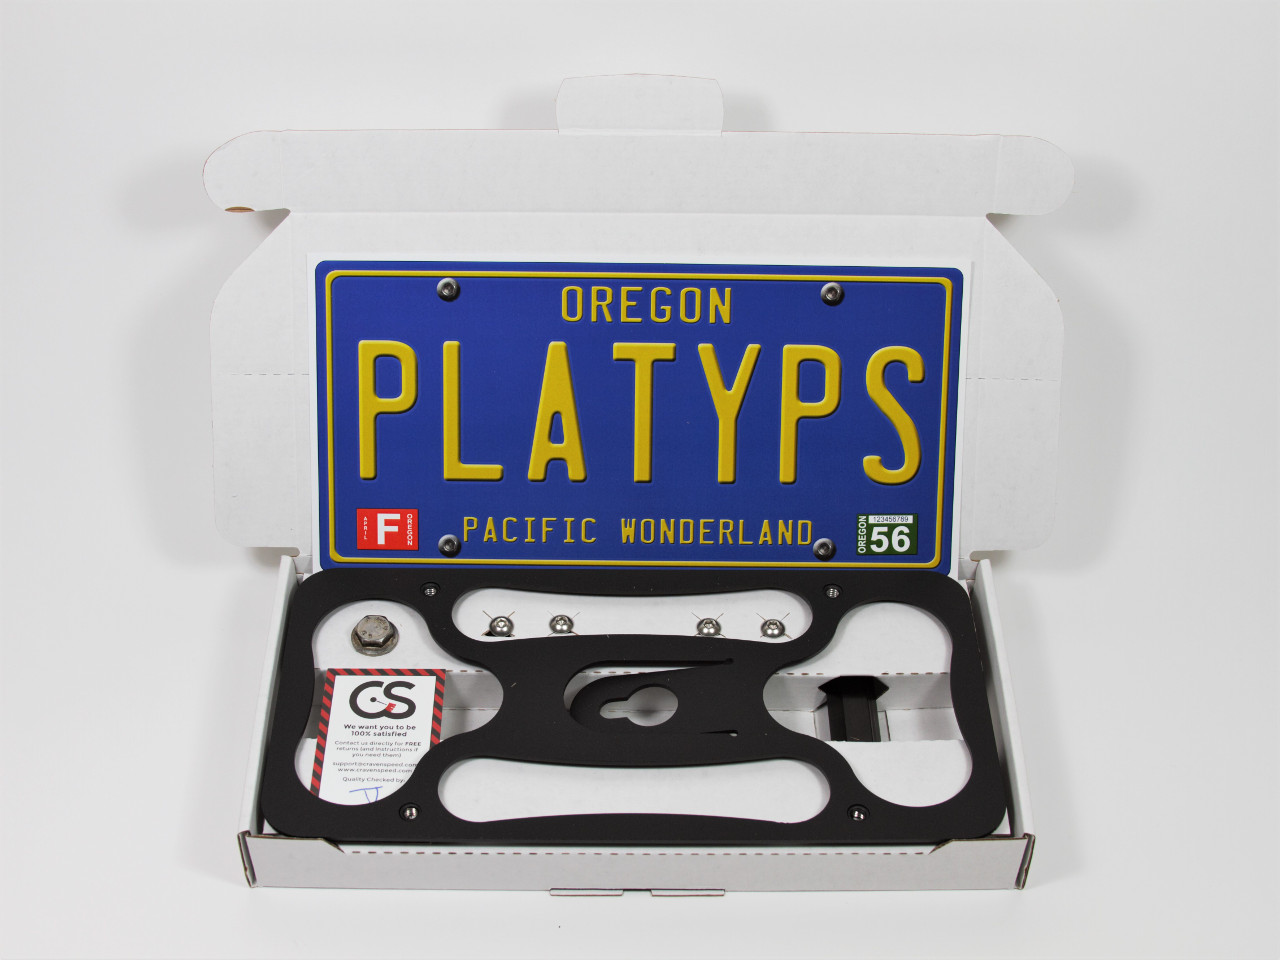 Assembled boxed parts thumbnail for The Platypus License Plate Mount for 2019-2020 BMW X5